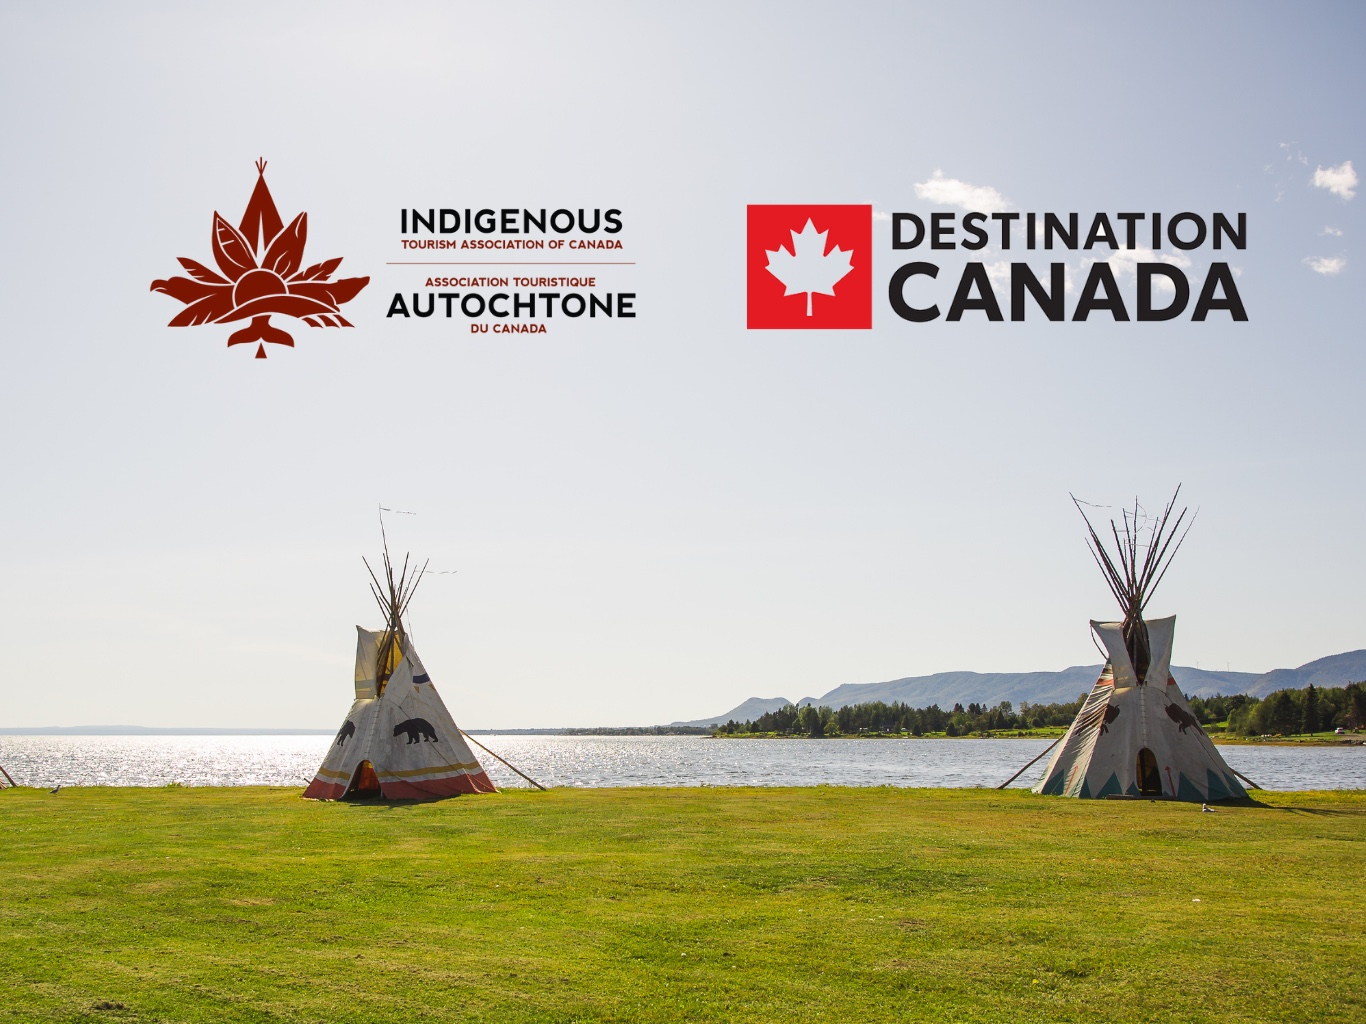 Prior to March 2020, Indigenous tourism was outpacing all other tourism sectors in Canada for growth.